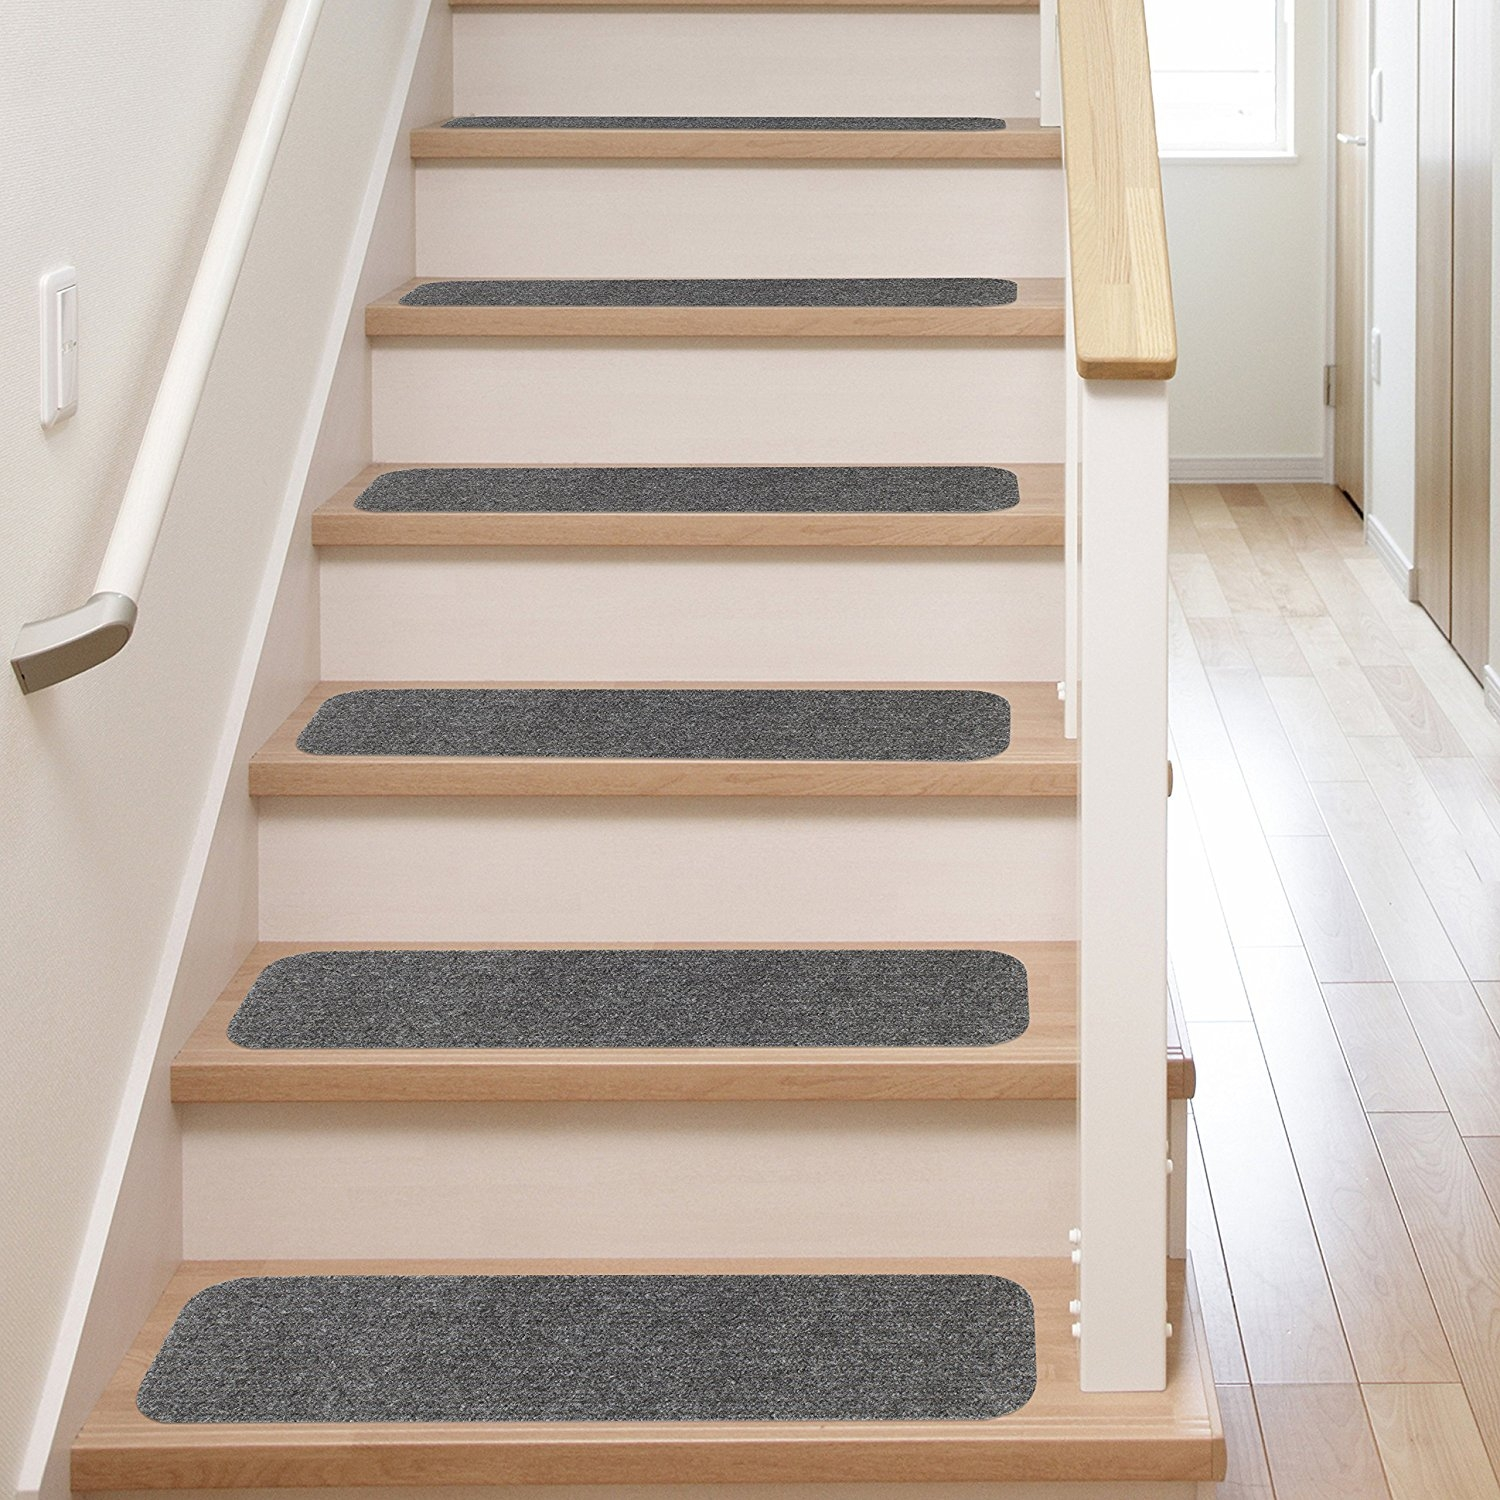 13 Stair Treads Non Slip Carpet Pads Easy Tape Installation Throughout Stair Tread Rugs Indoor (#1 of 20)